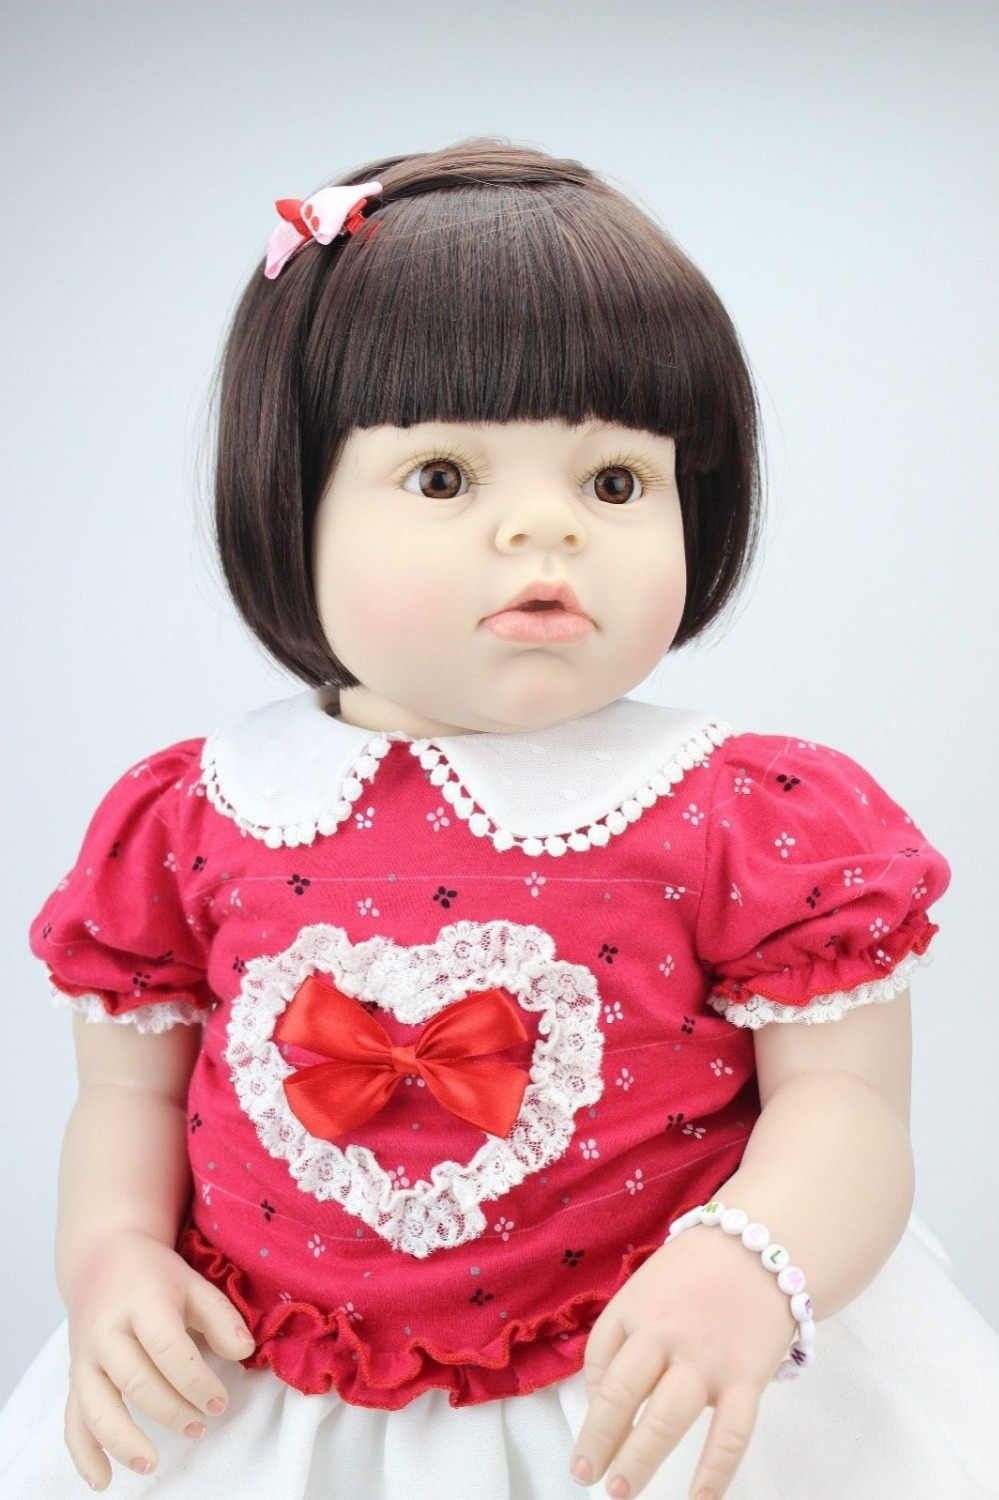 Best-selling doll lifelike reborn toddler doll 28'' 70cm soft silicone vinyl real gentle touch for girl present lifelike reborn toddler doll soft silicone vinyl real gentle touch 28inches